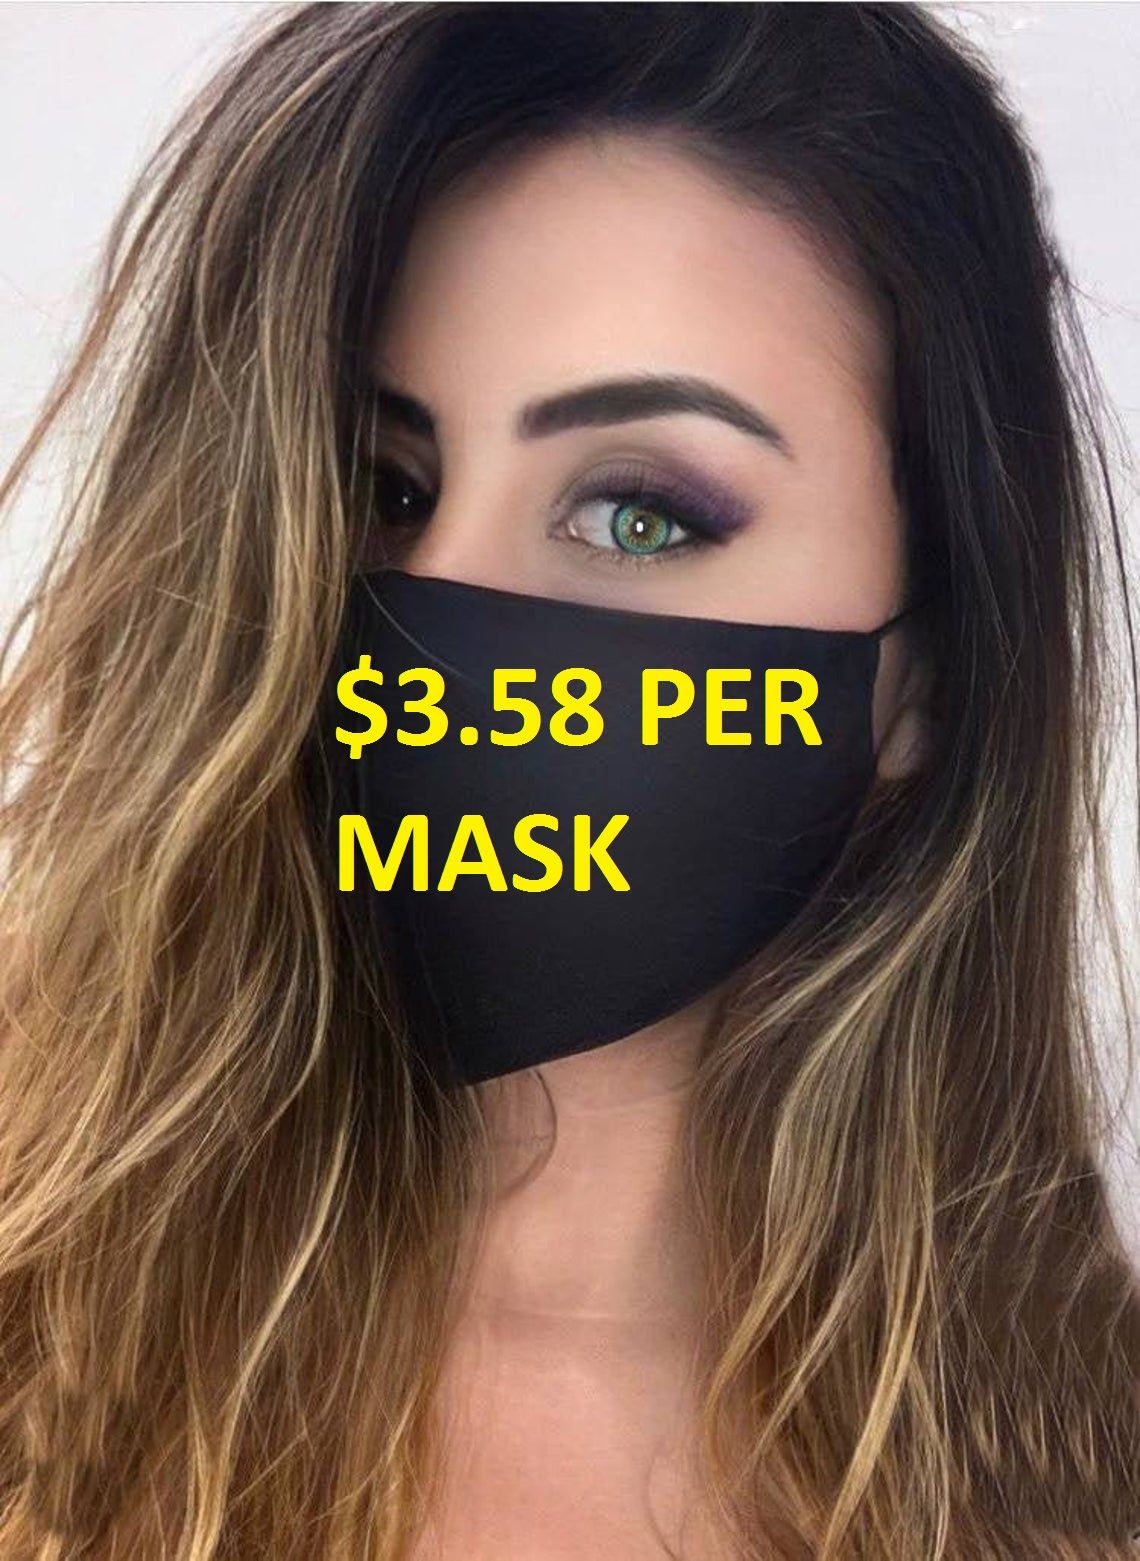 5 Adult Unisex 3 Ply Soft USA Made Mask with Filter Pocket